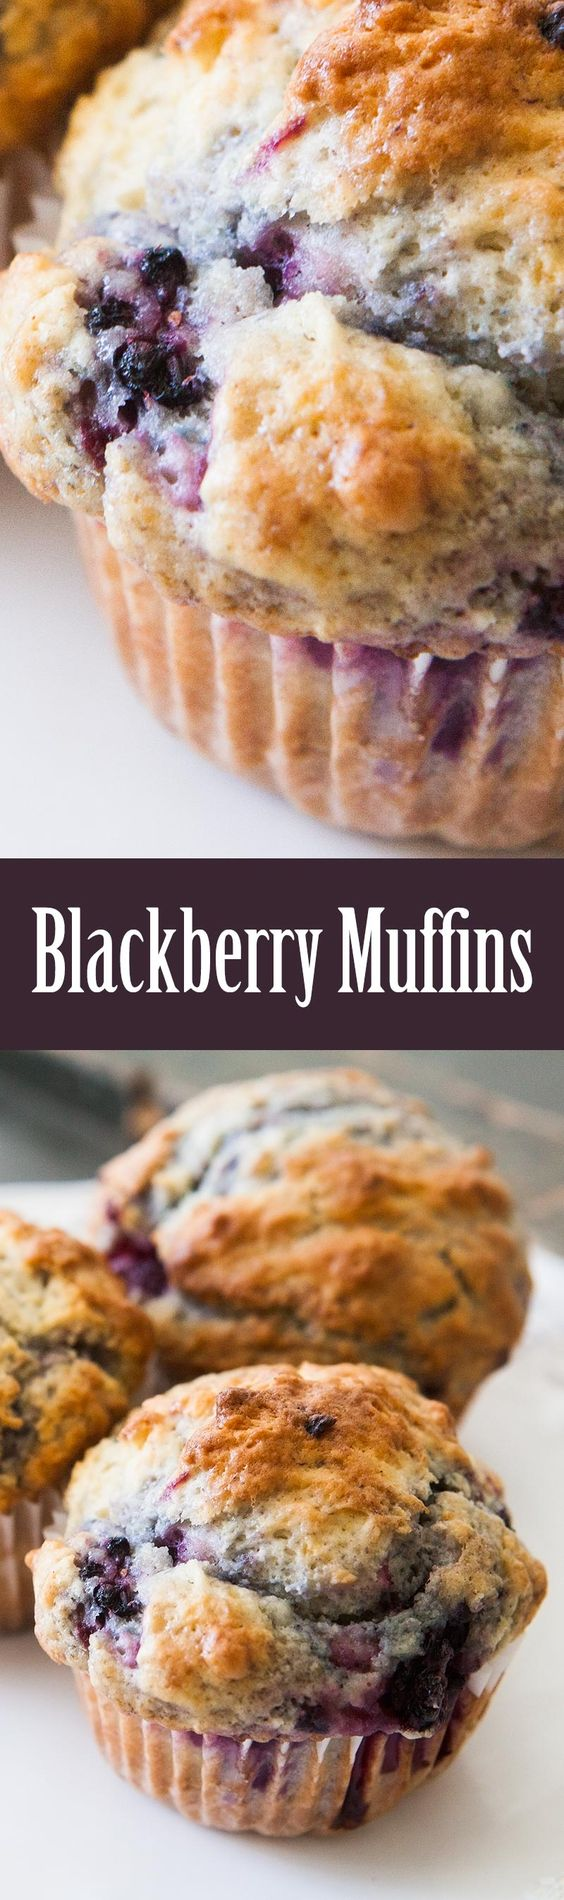 Blackberry Muffins Recipe — Dishmaps